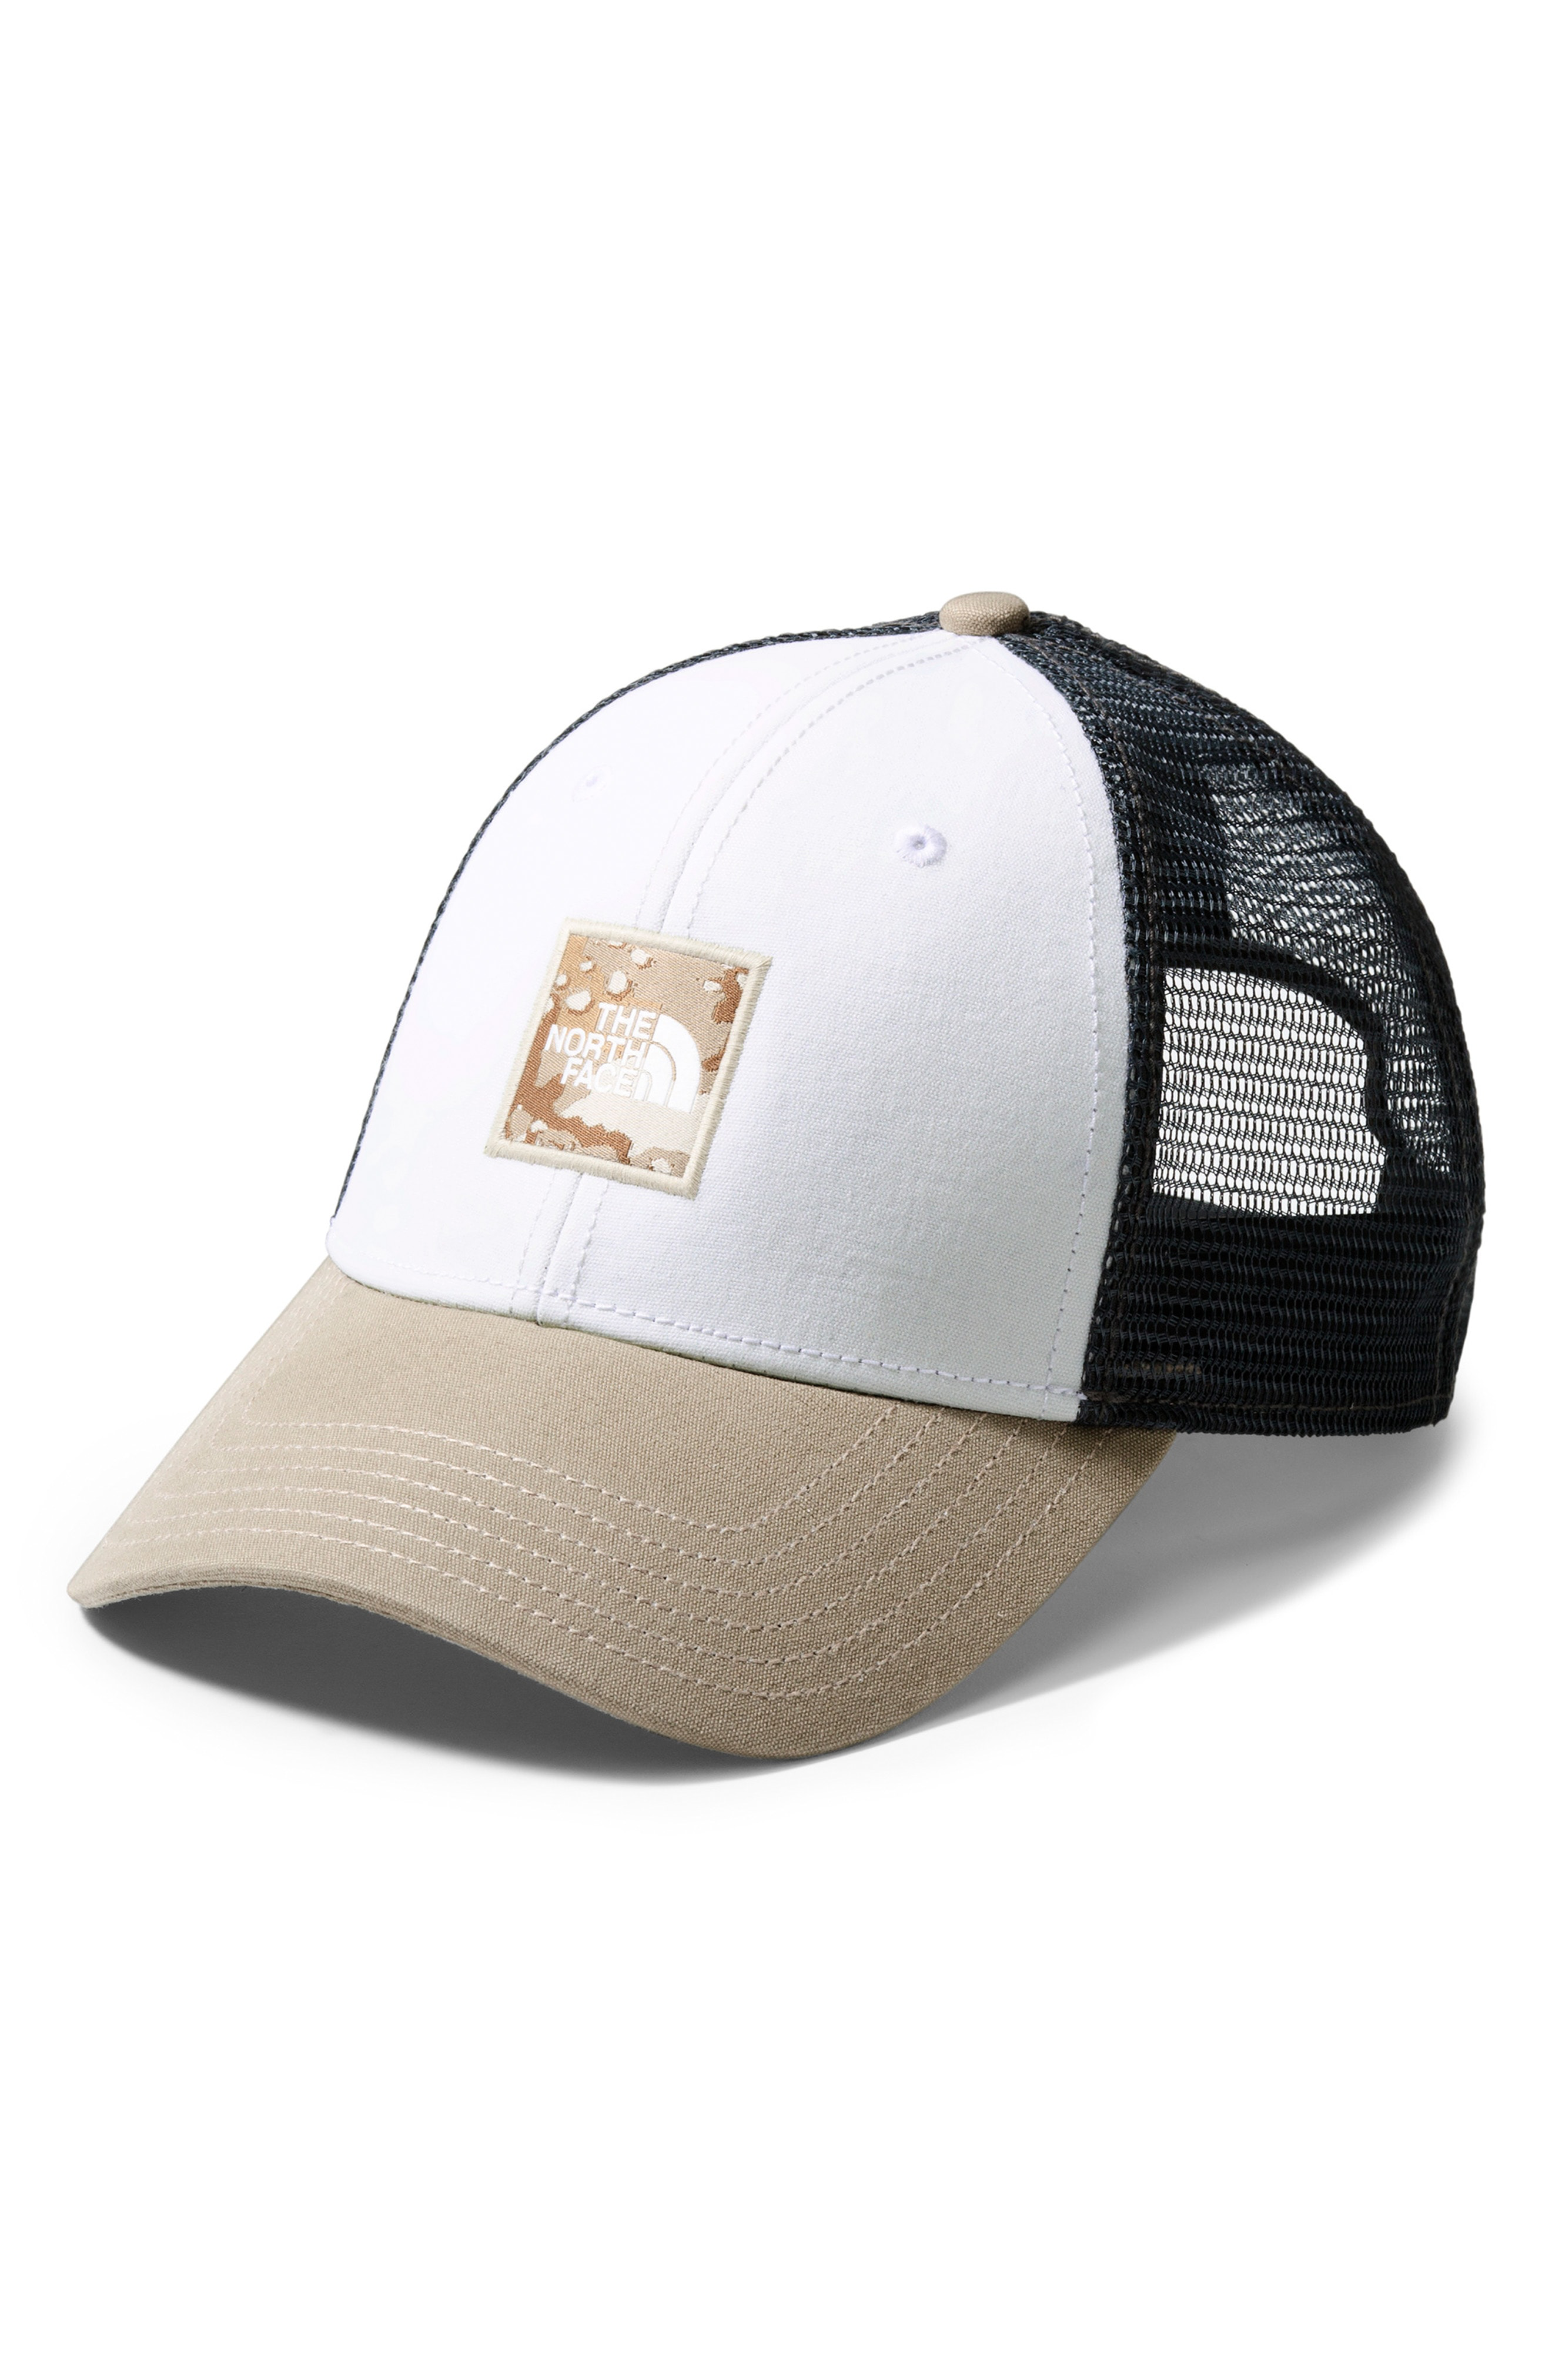 d7c0d418770cc The North Face Box Logo Trucker Hat - White In Tnfw Moabk